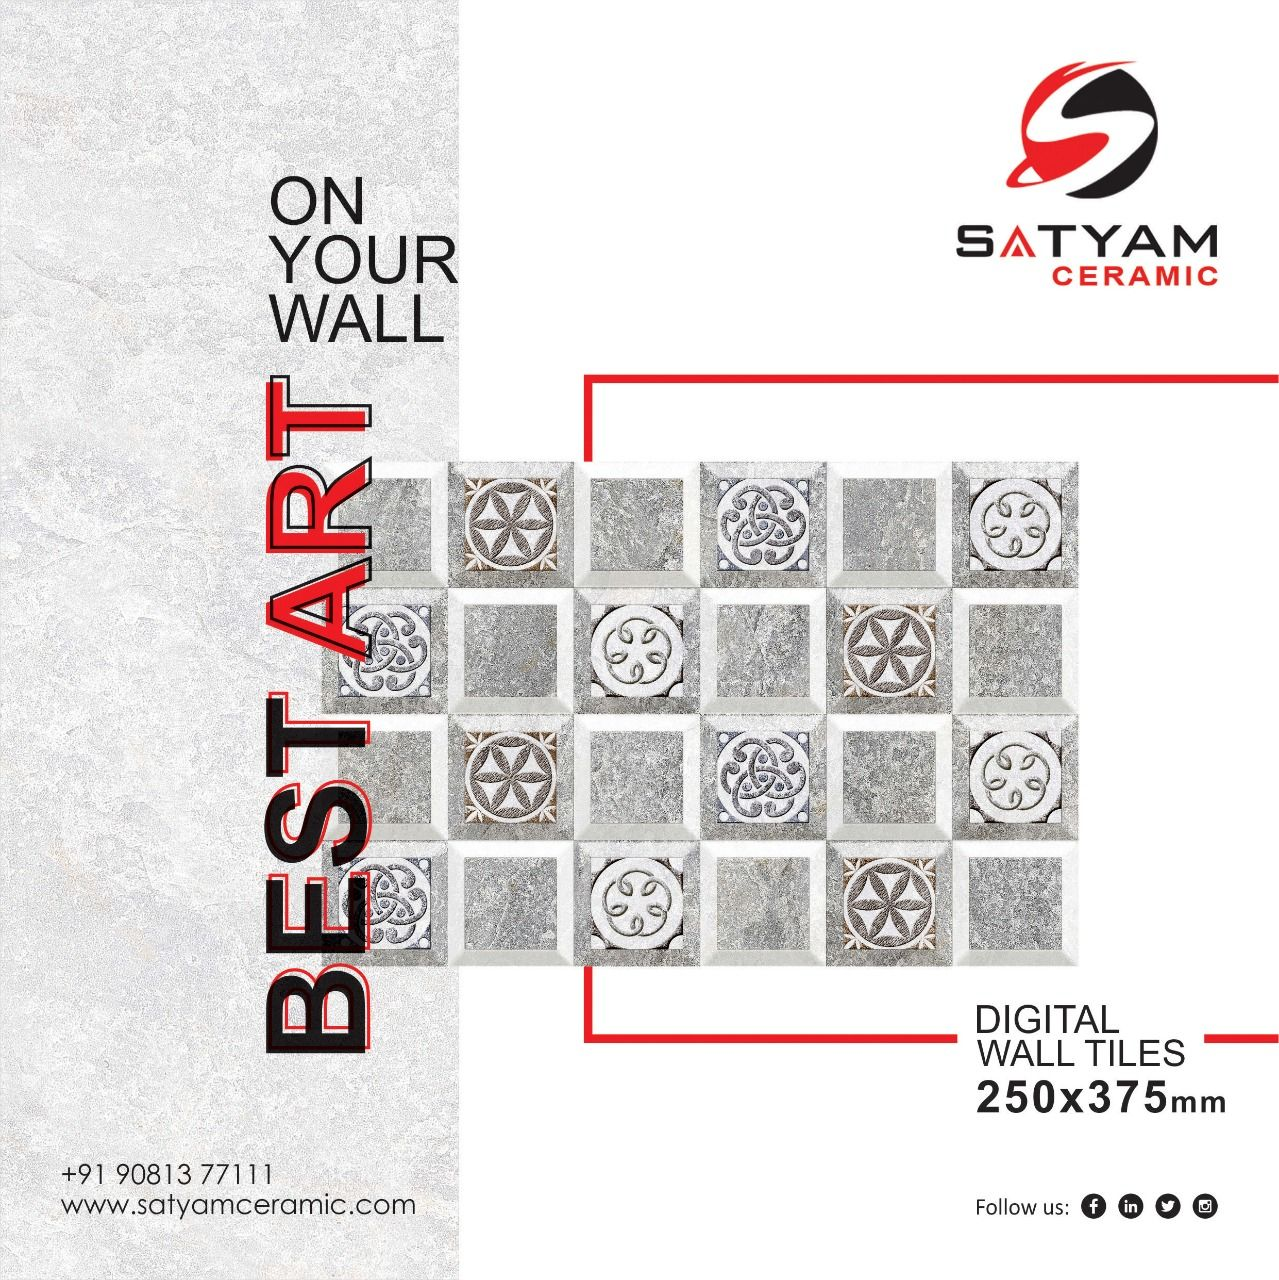 On Your Wall Best Art Digital Wall Tiles 250x375 Mm Satyamceramic Digitalwalltiles Walltiles Til Ceramic Wall Art Ceramic Art Wall Tiles